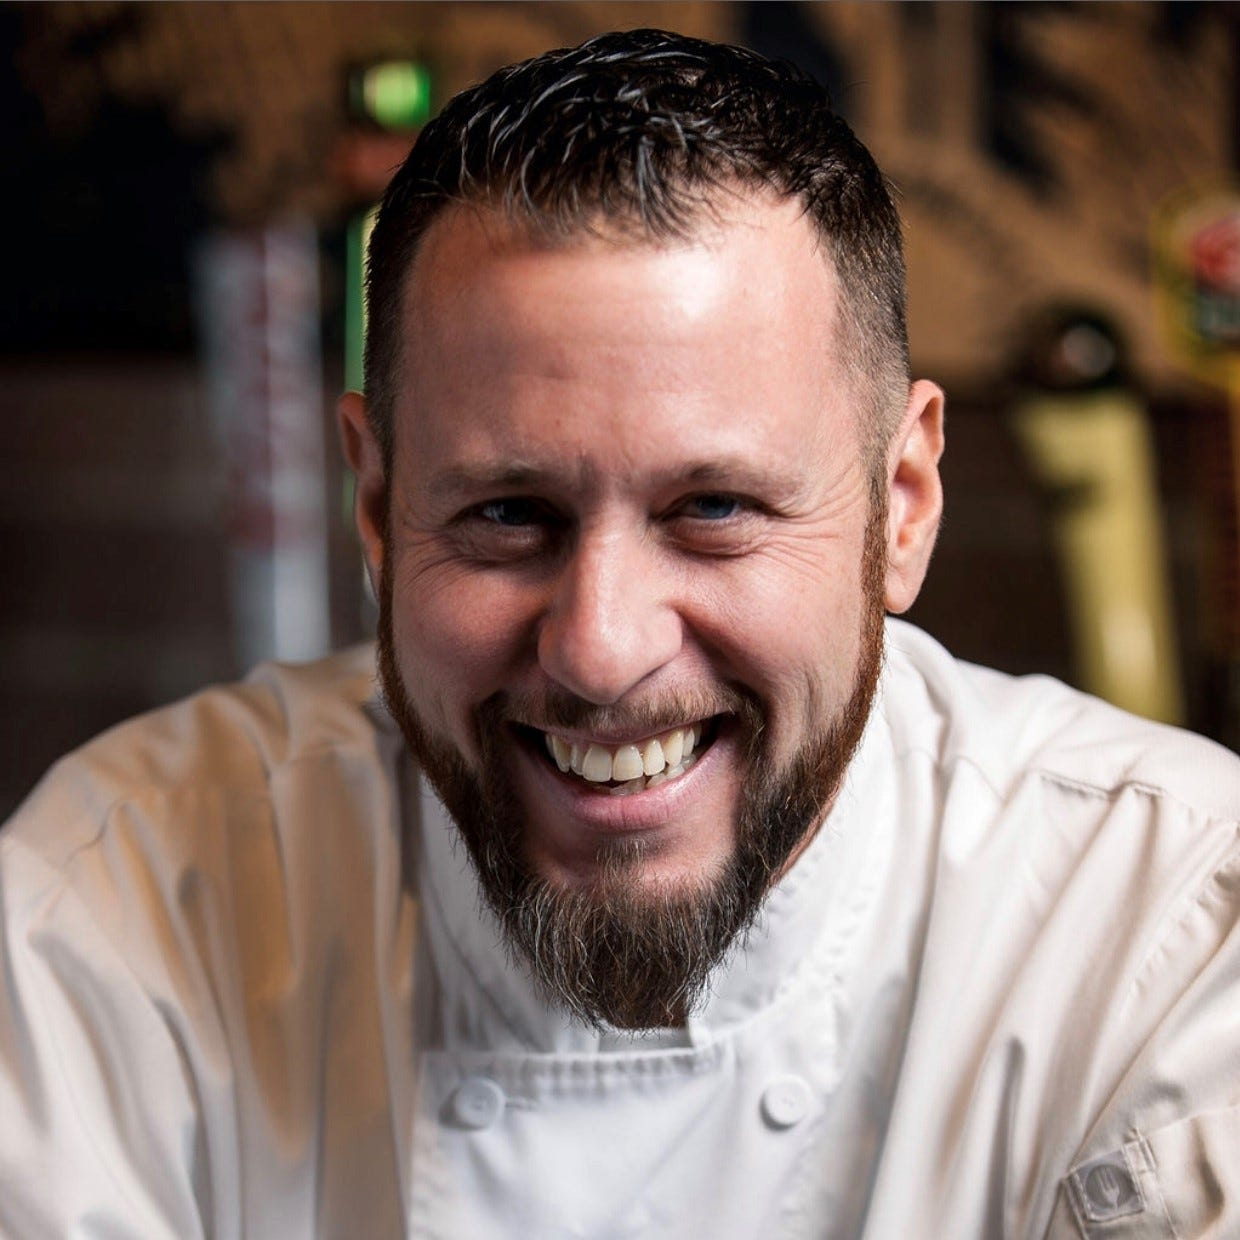 Phoenix chef takes home the top prize on Food Network's 'Chopped'